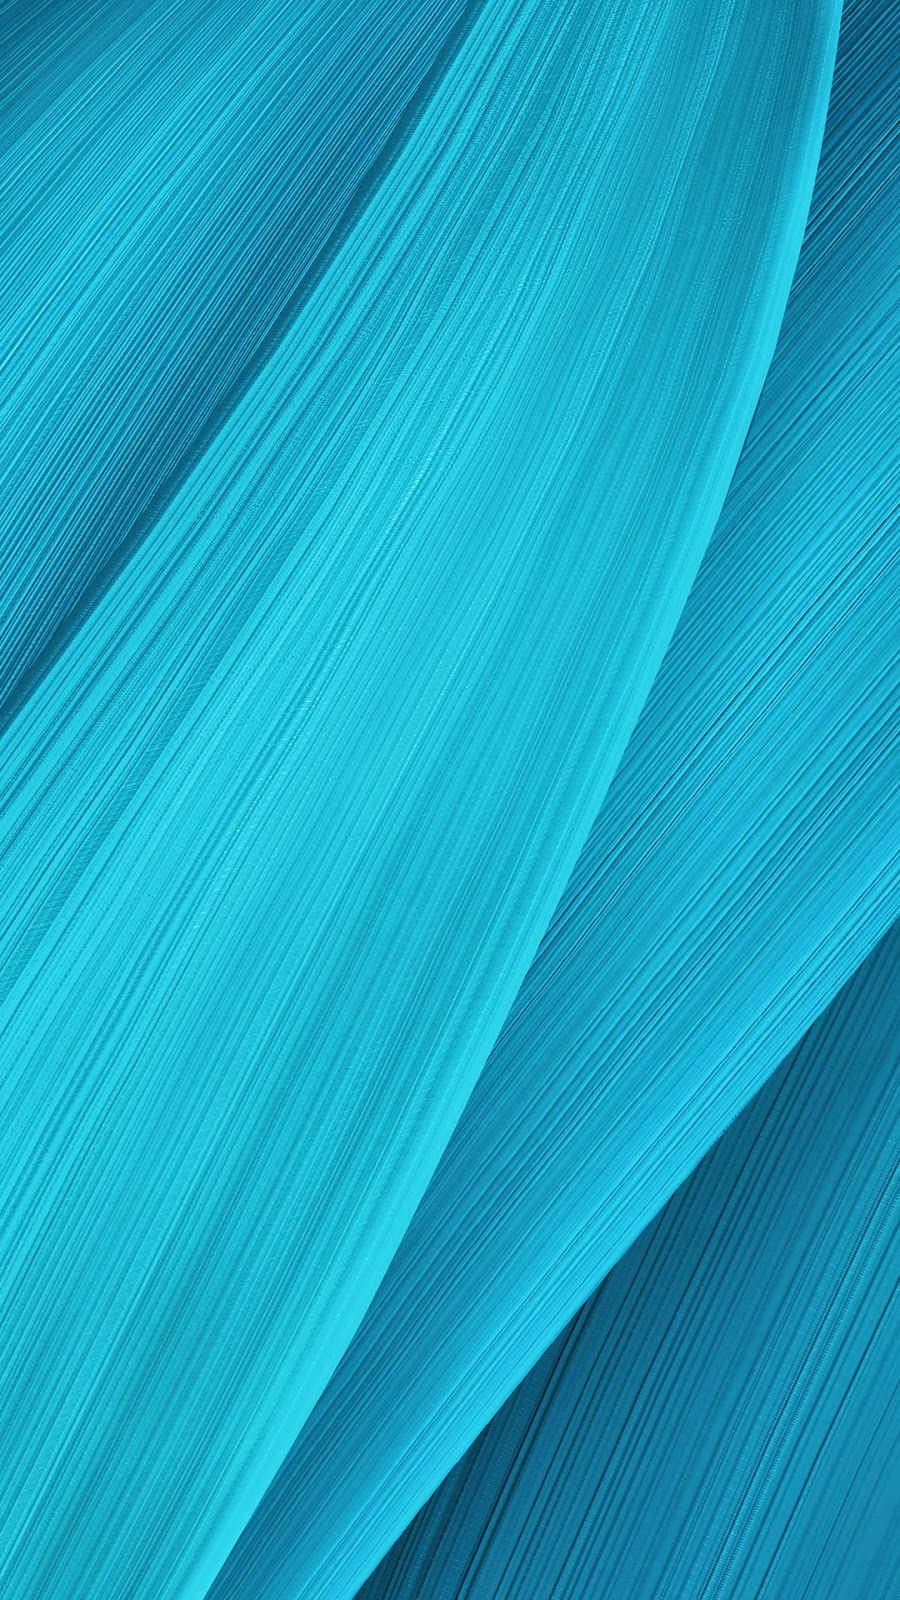 default_wallpaper_1k